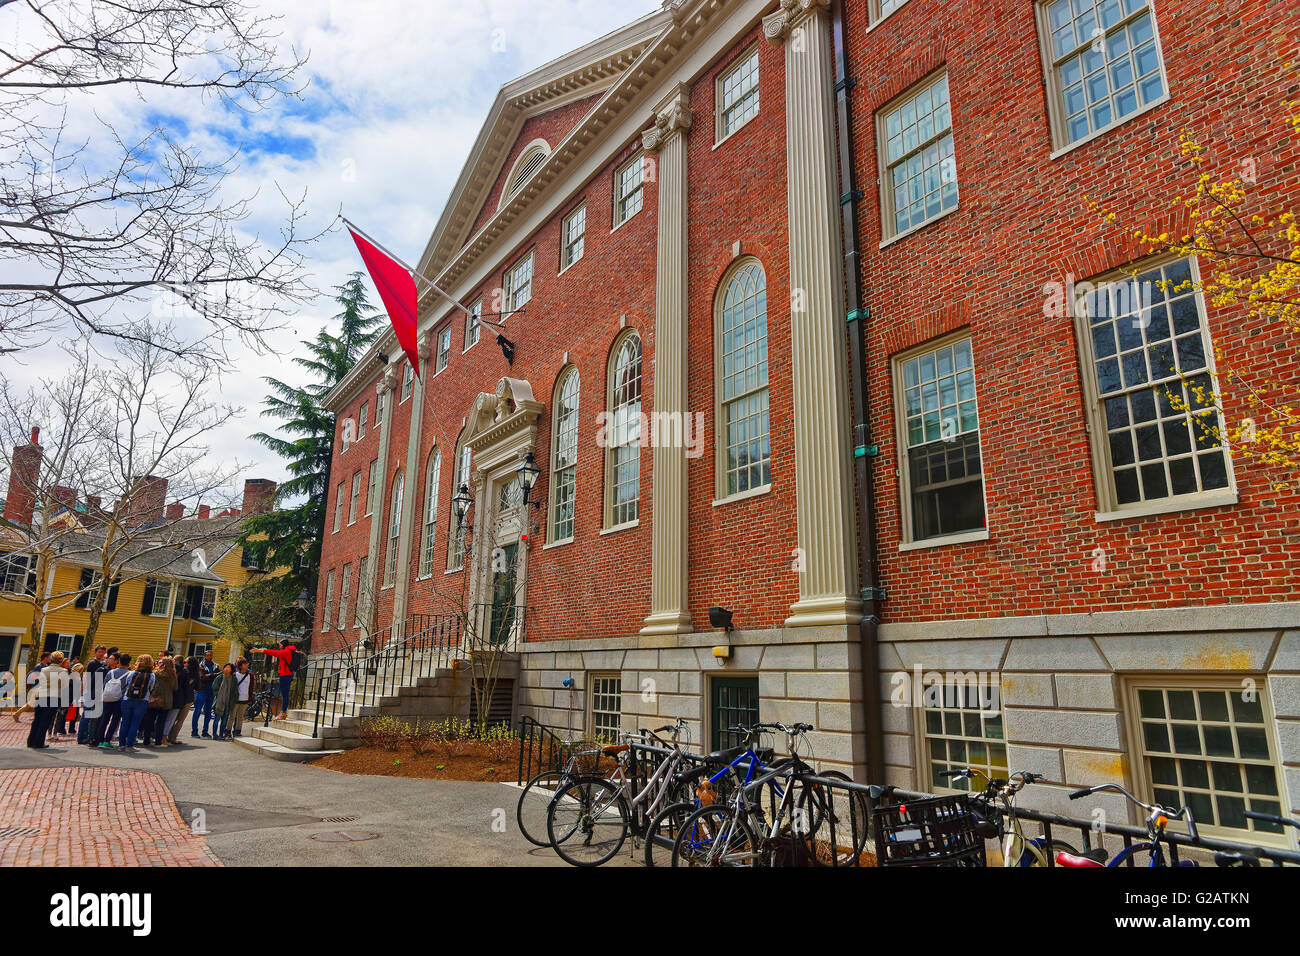 Cambridge, USA - April 29, 2015: Bicycles at Lehman Hall and tourists in the campus of Harvard University of Cambridge, - Stock Image